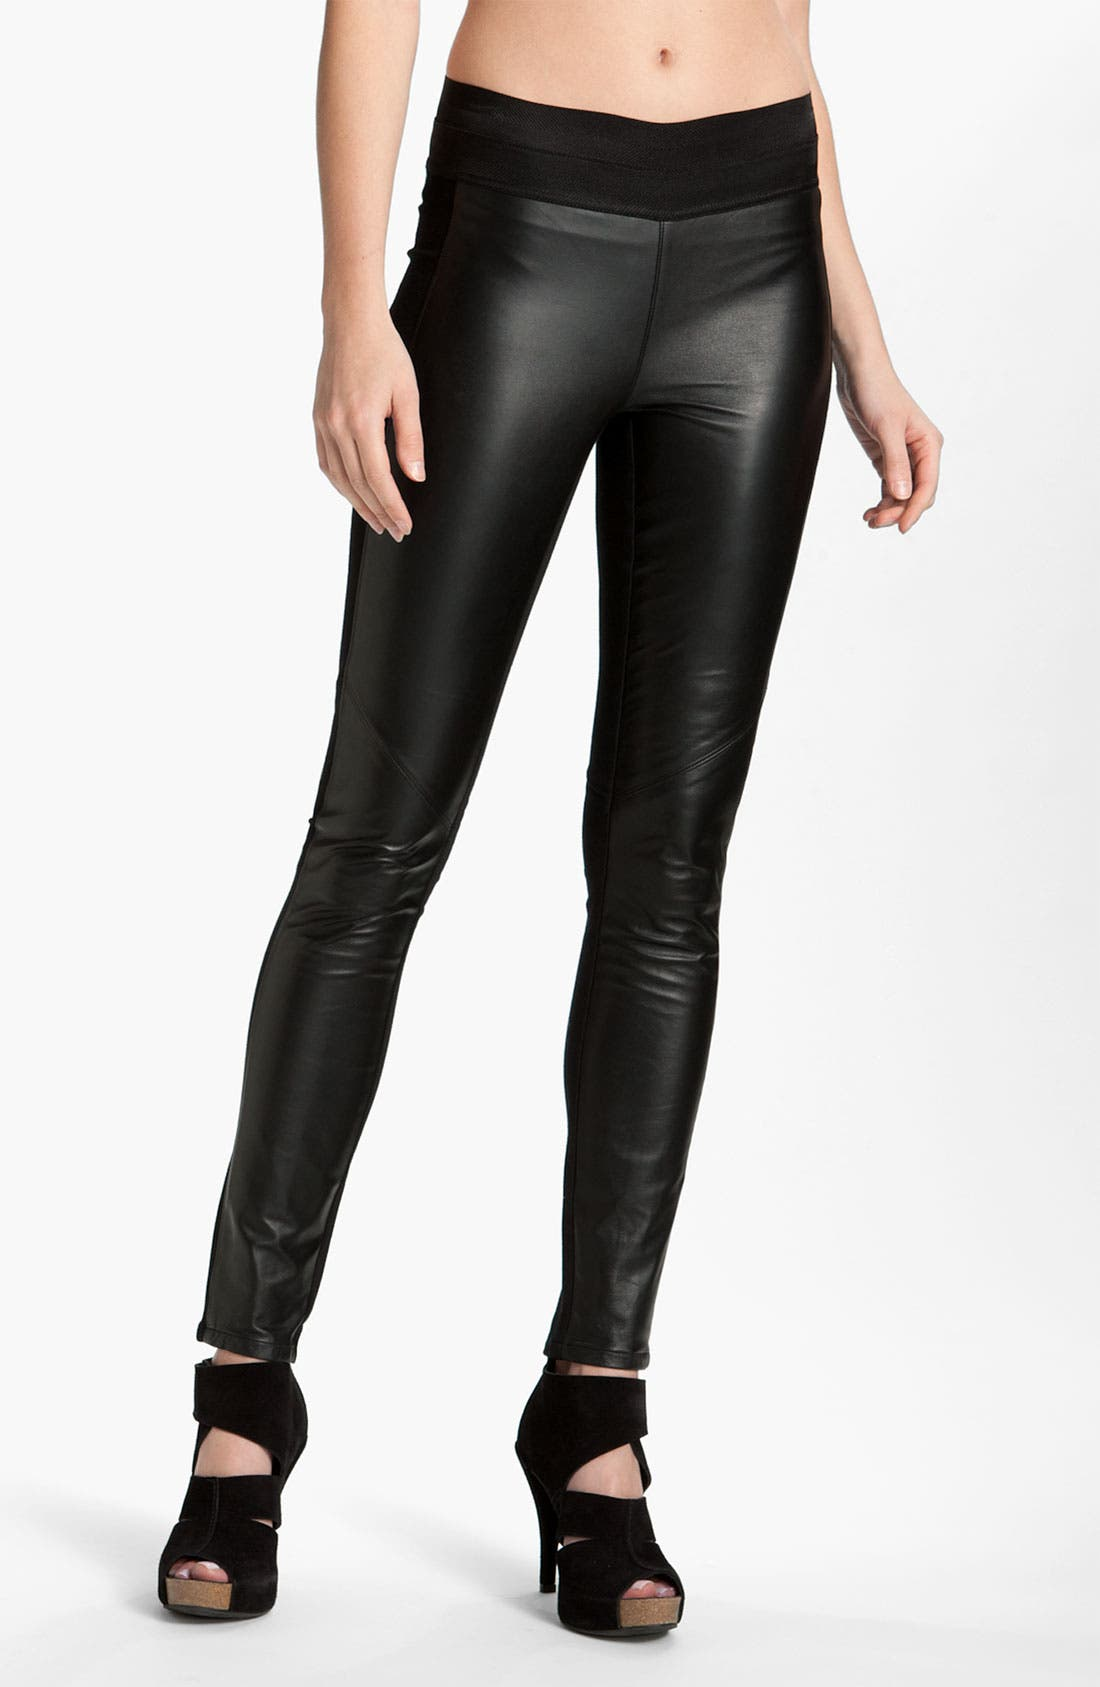 Alternate Image 1 Selected - Paige Black Label 'Paloma' Leather Panel Leggings